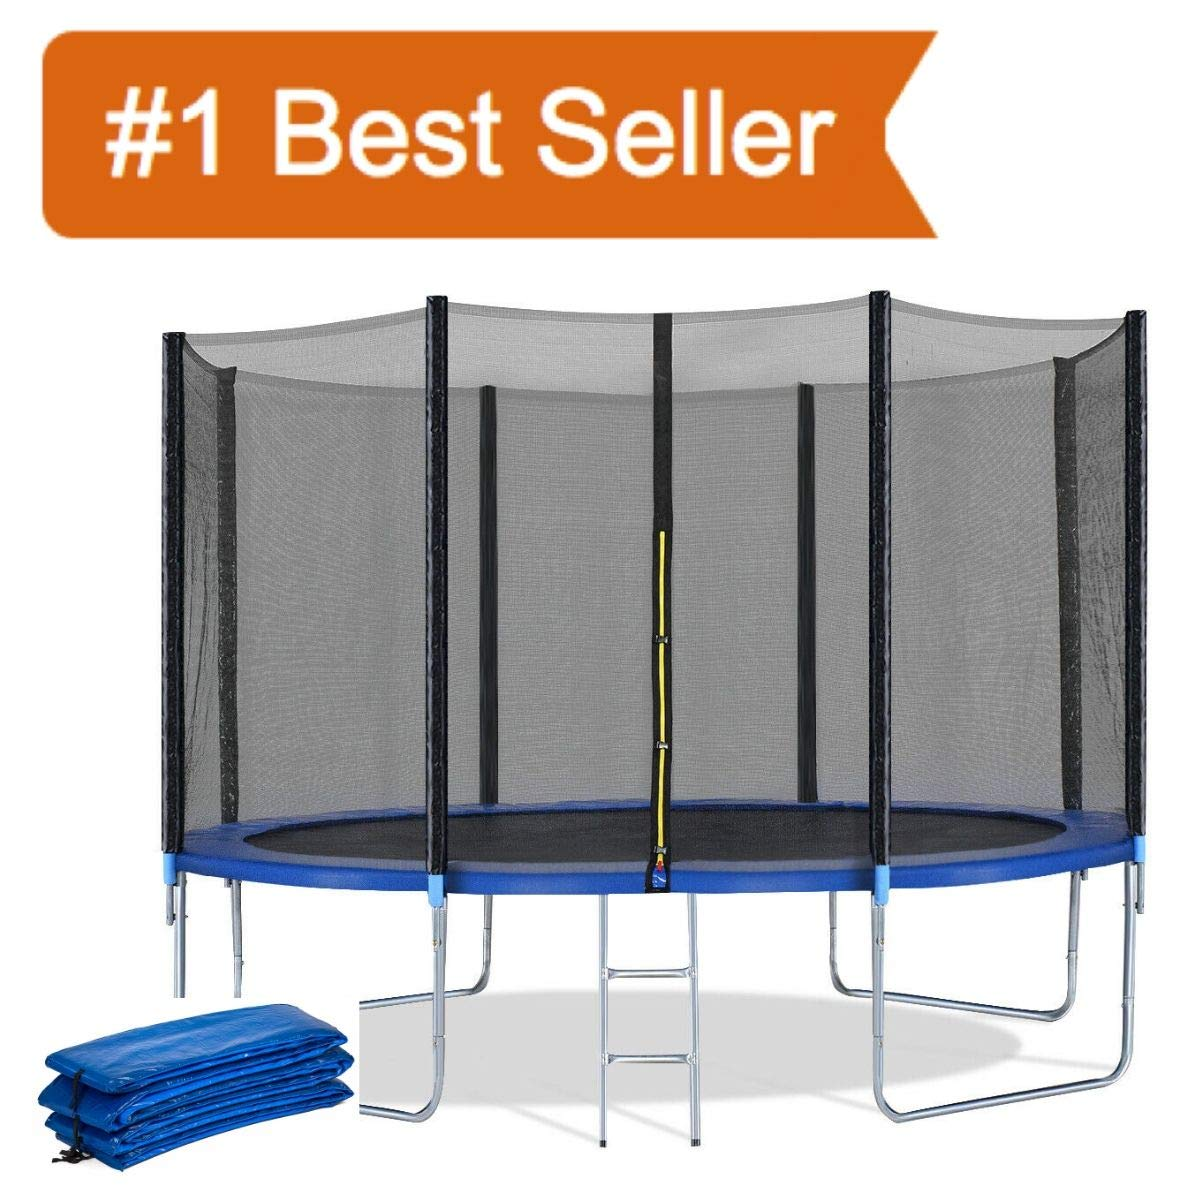 Giantex Trampoline Combo Bounce Jump Safety Enclosure Net W/Spring Pad Ladder, (12 FT + Trampoline Spring Cover)